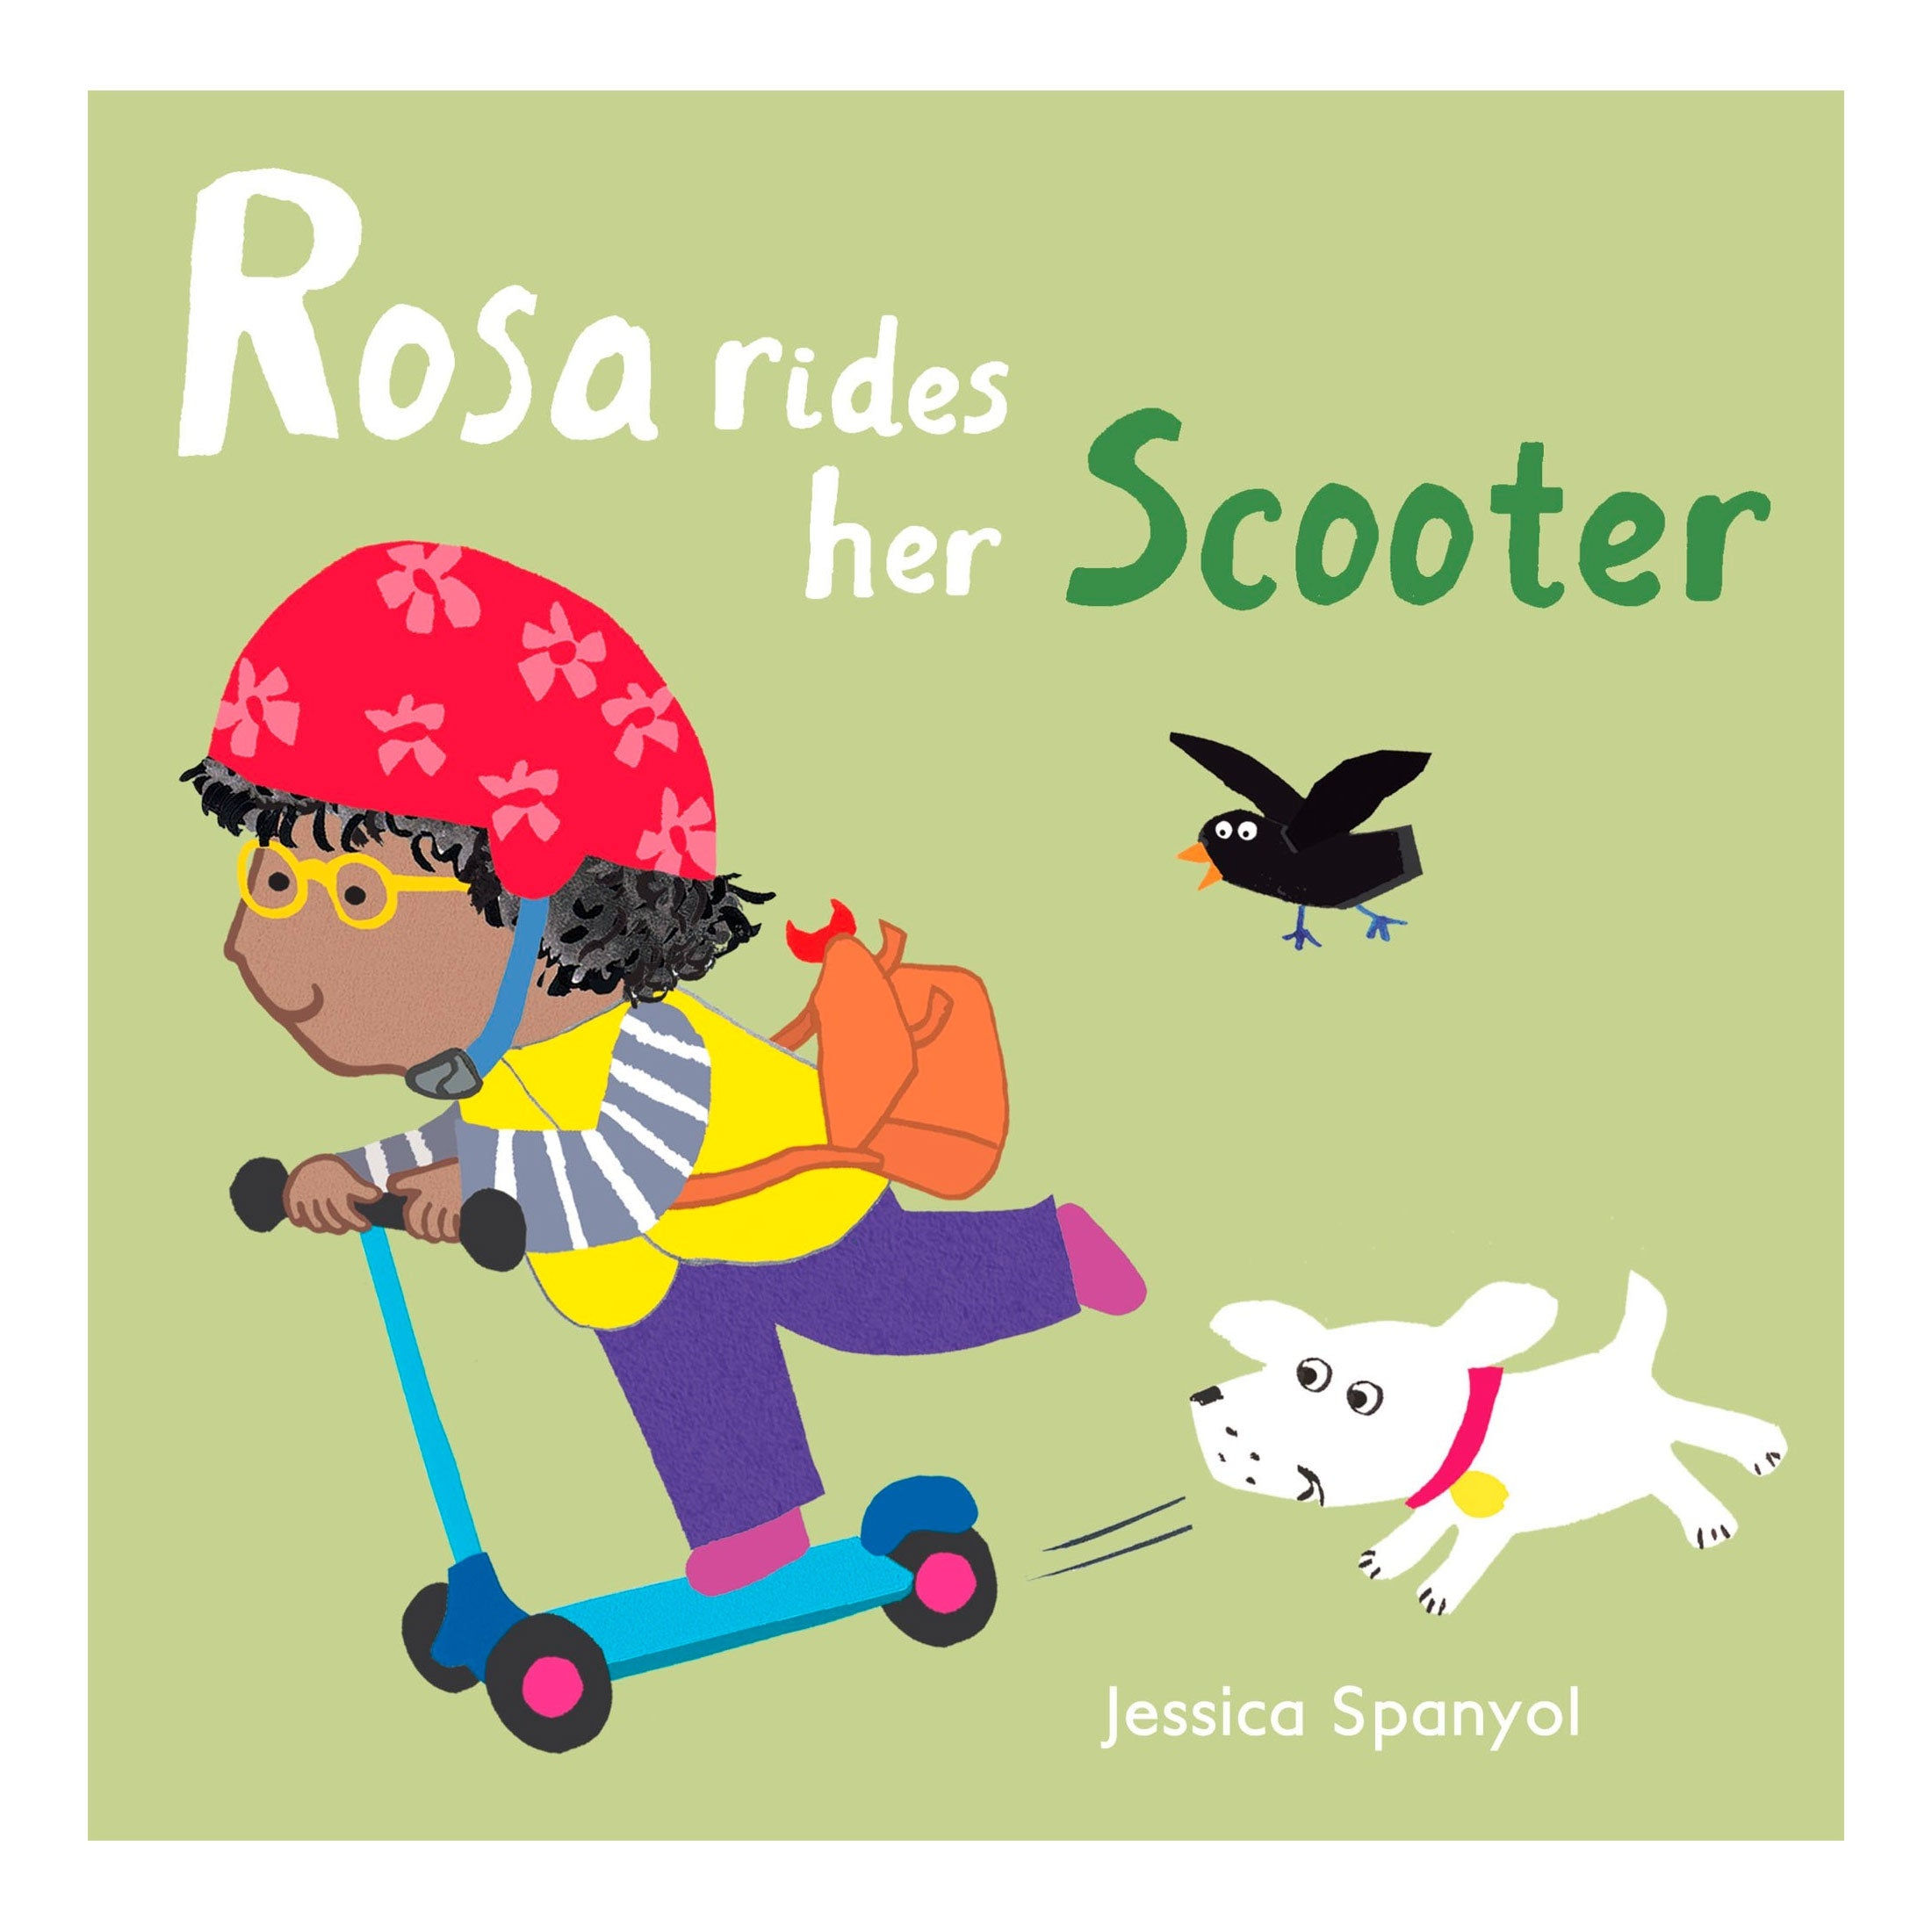 Rosa rides her Scooter